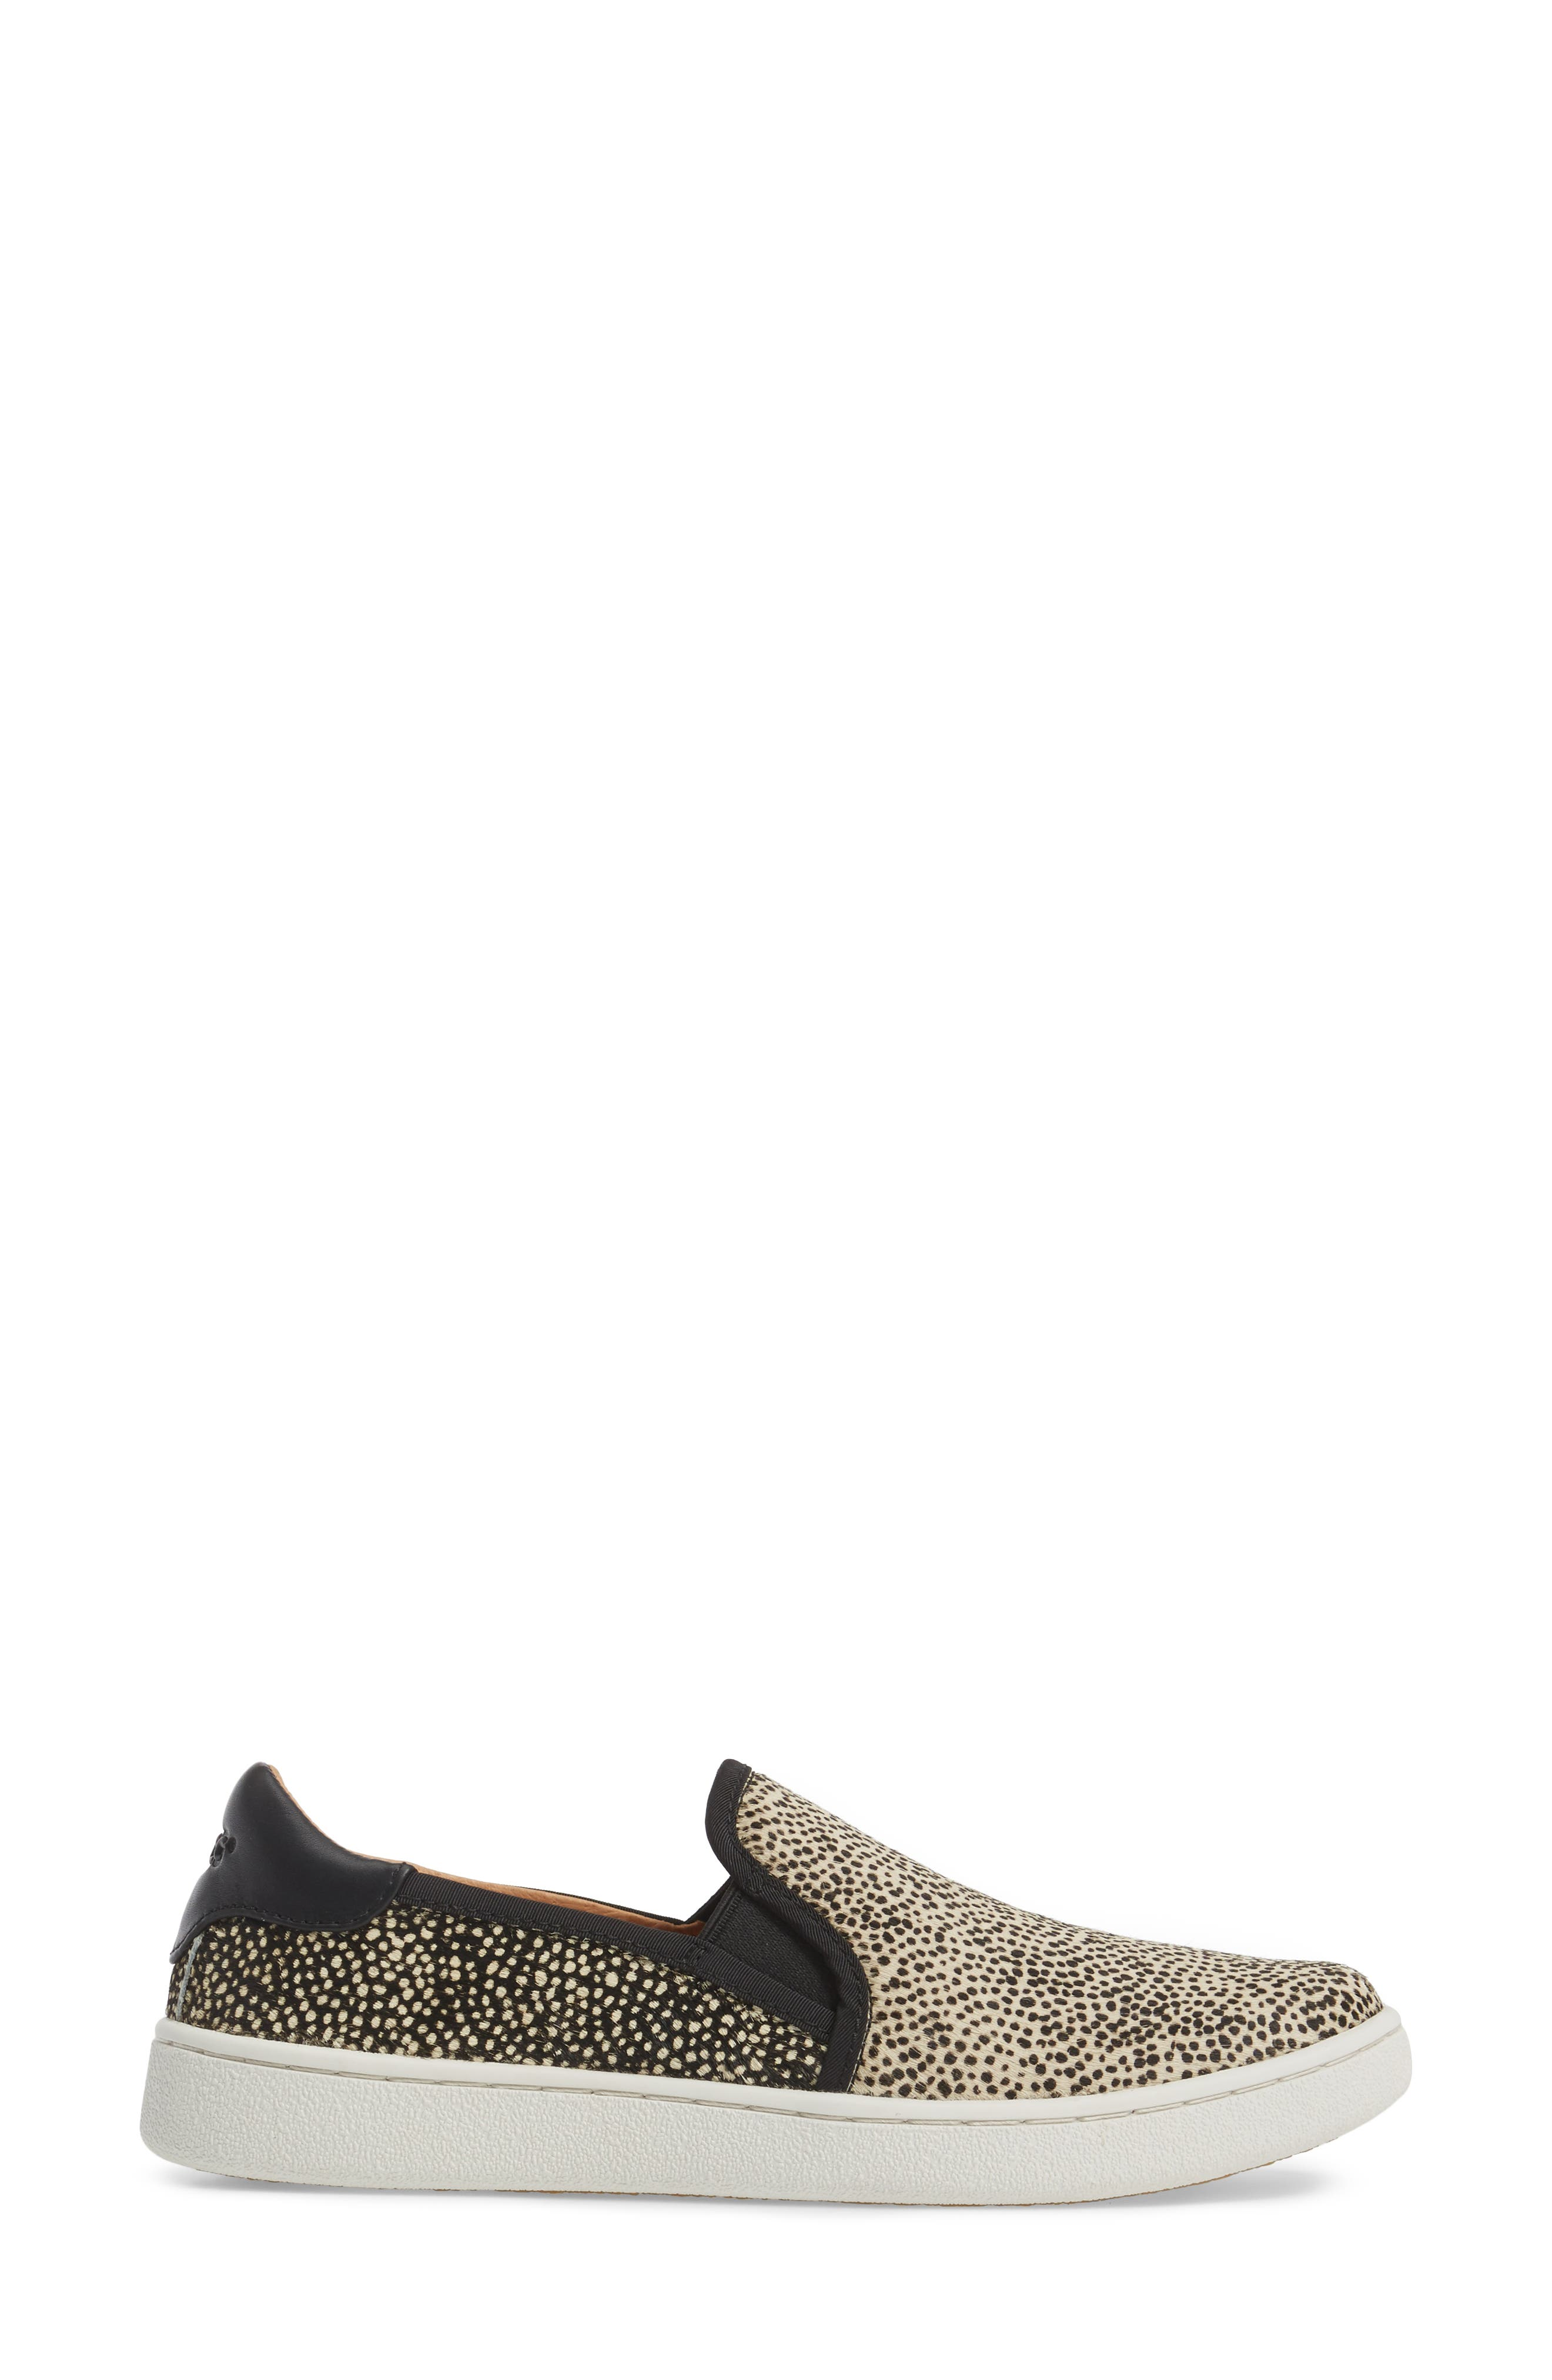 Cas Exotic Genuine Calf Hair Slip-On Sneaker,                             Alternate thumbnail 3, color,                             Black/ Tan Dotted Leather